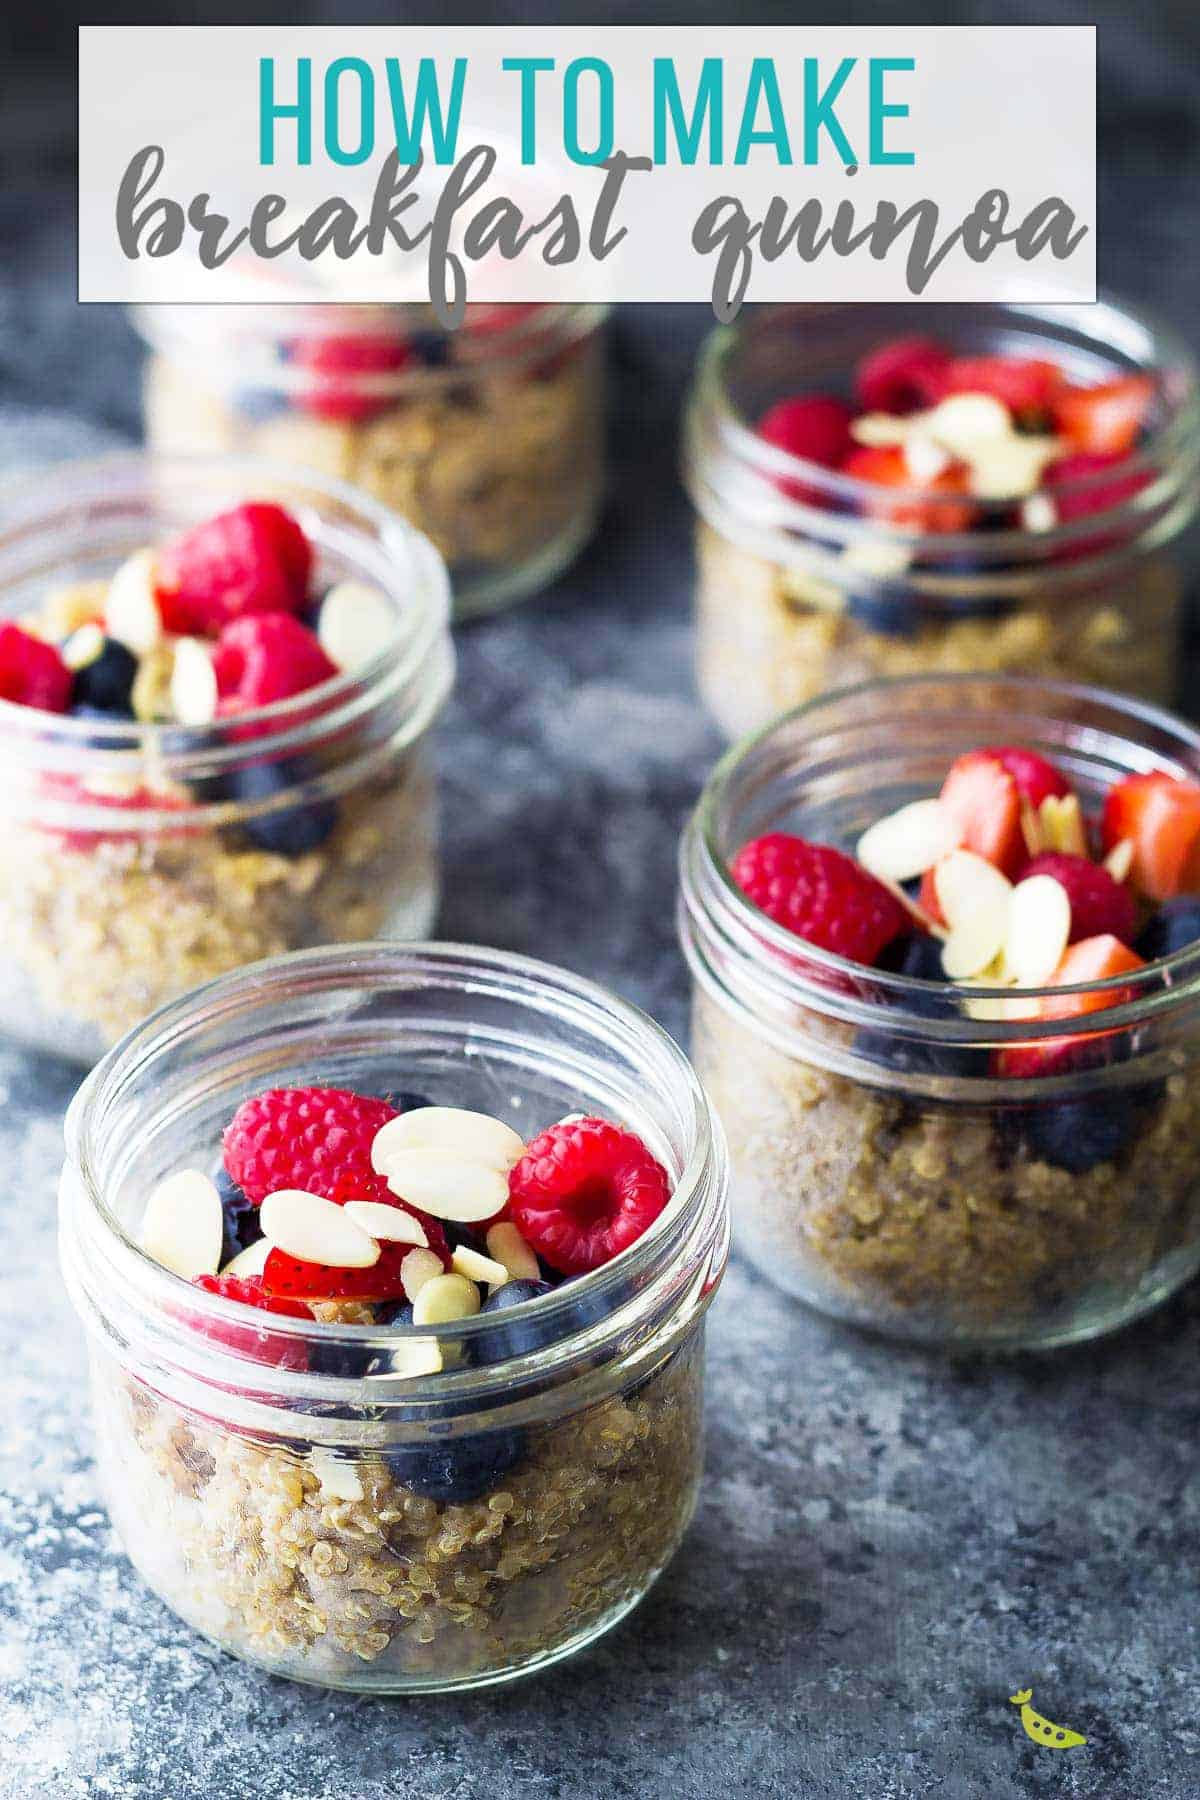 Berry quinoa breakfast meal prep is a great alternative to oatmeal! Simple and delicious with chewy quinoa, crunchy almonds and sweet berries. Gluten-free, vegan, clean eating, and prepped in under 30 minutes! #sweetpeasandsaffron #mealprep #glutenfree #quinoa #breakfast #vegan #cleaneating #berries #strawberries #blueberries #almonds